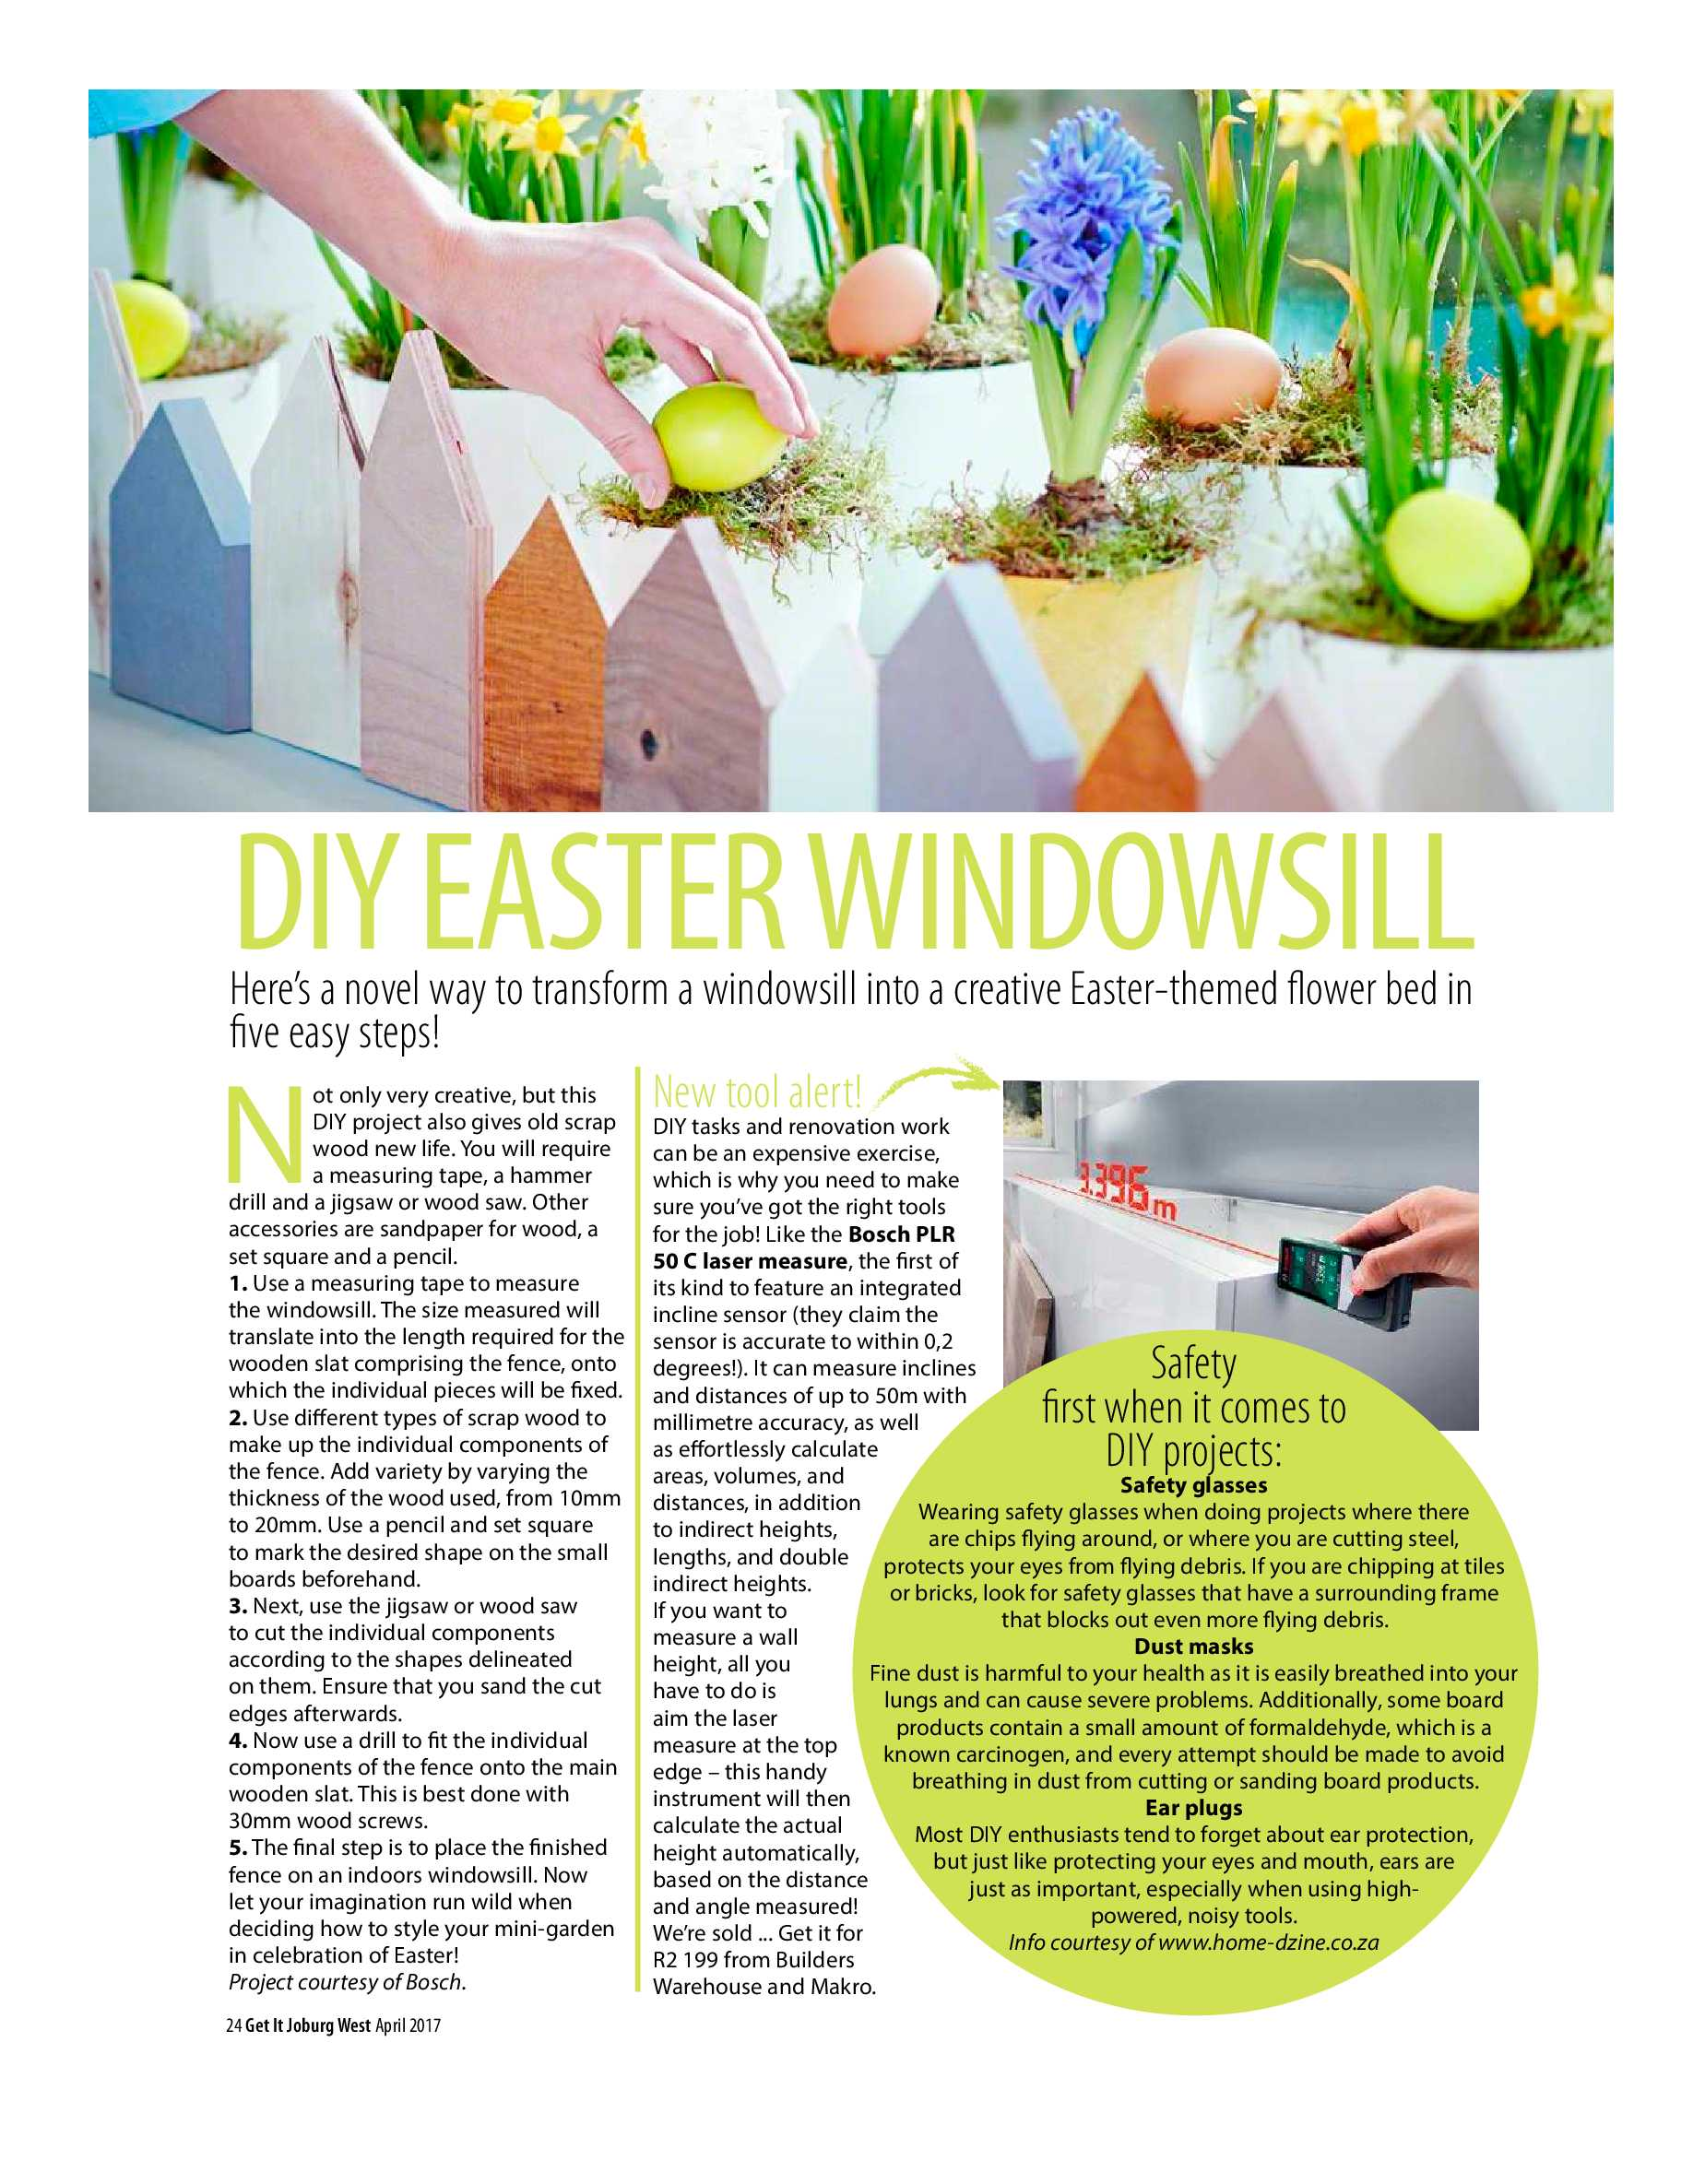 get-jhb-west-april-2017-epapers-page-24